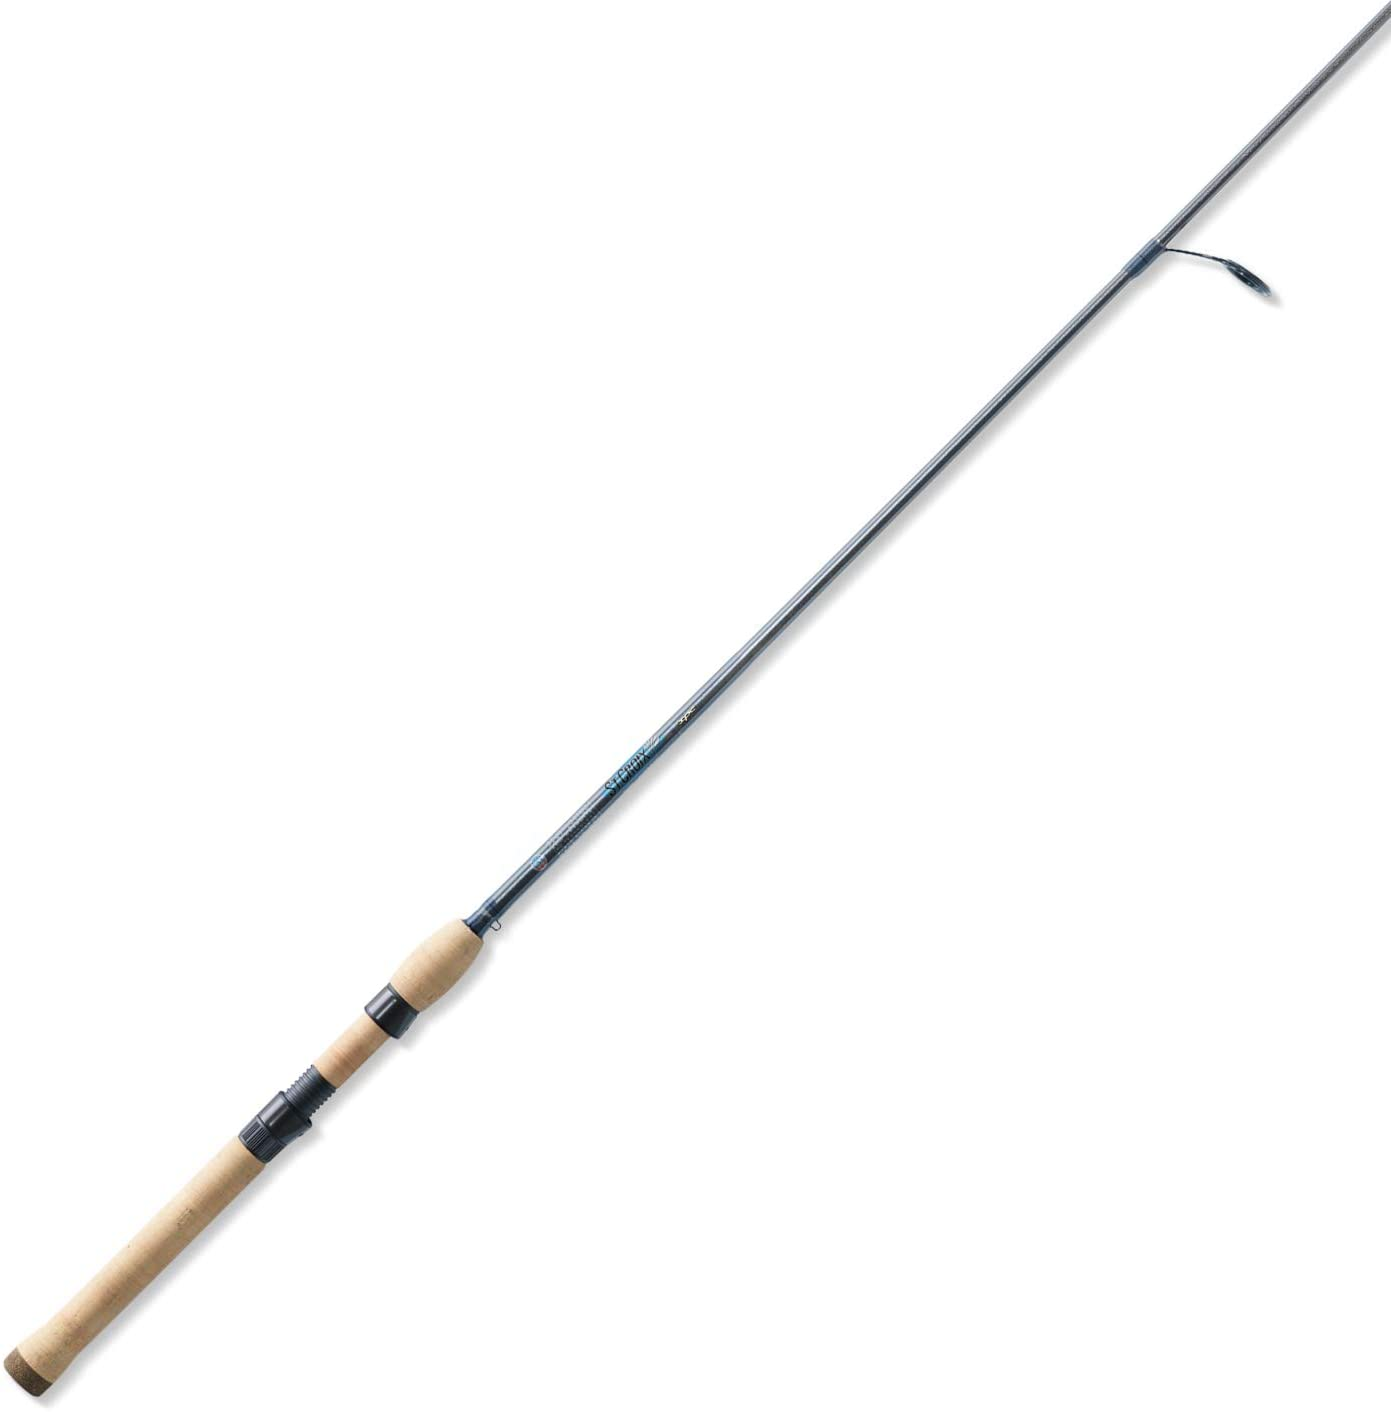 St. Croix Avid Graphite Spinning Fishing Rod with IPC Technology